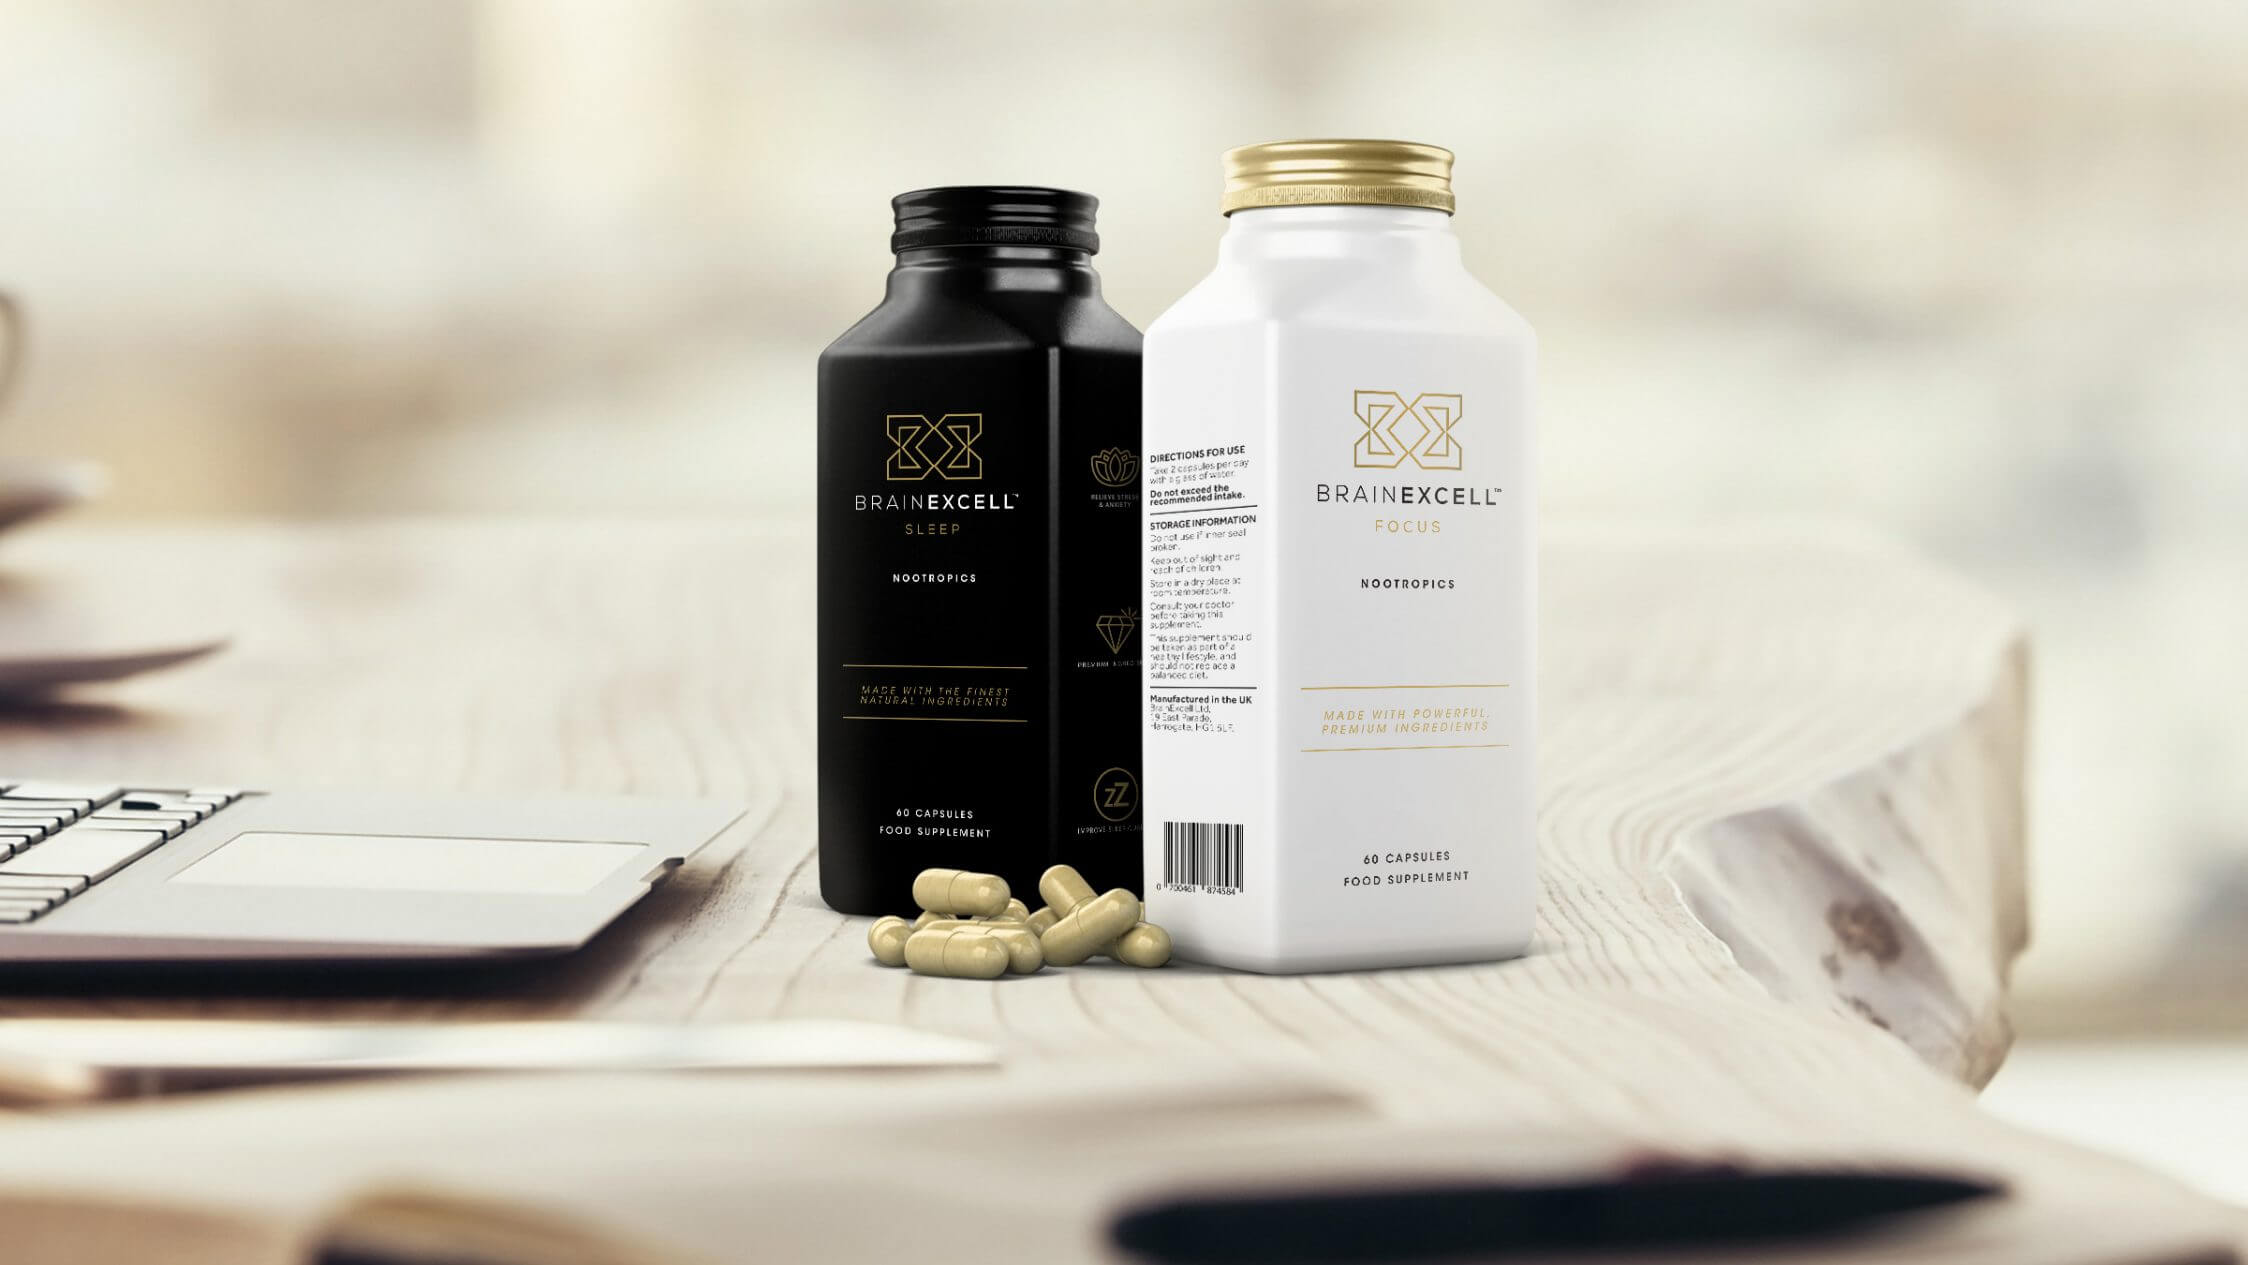 Website design for nootropics supplement company